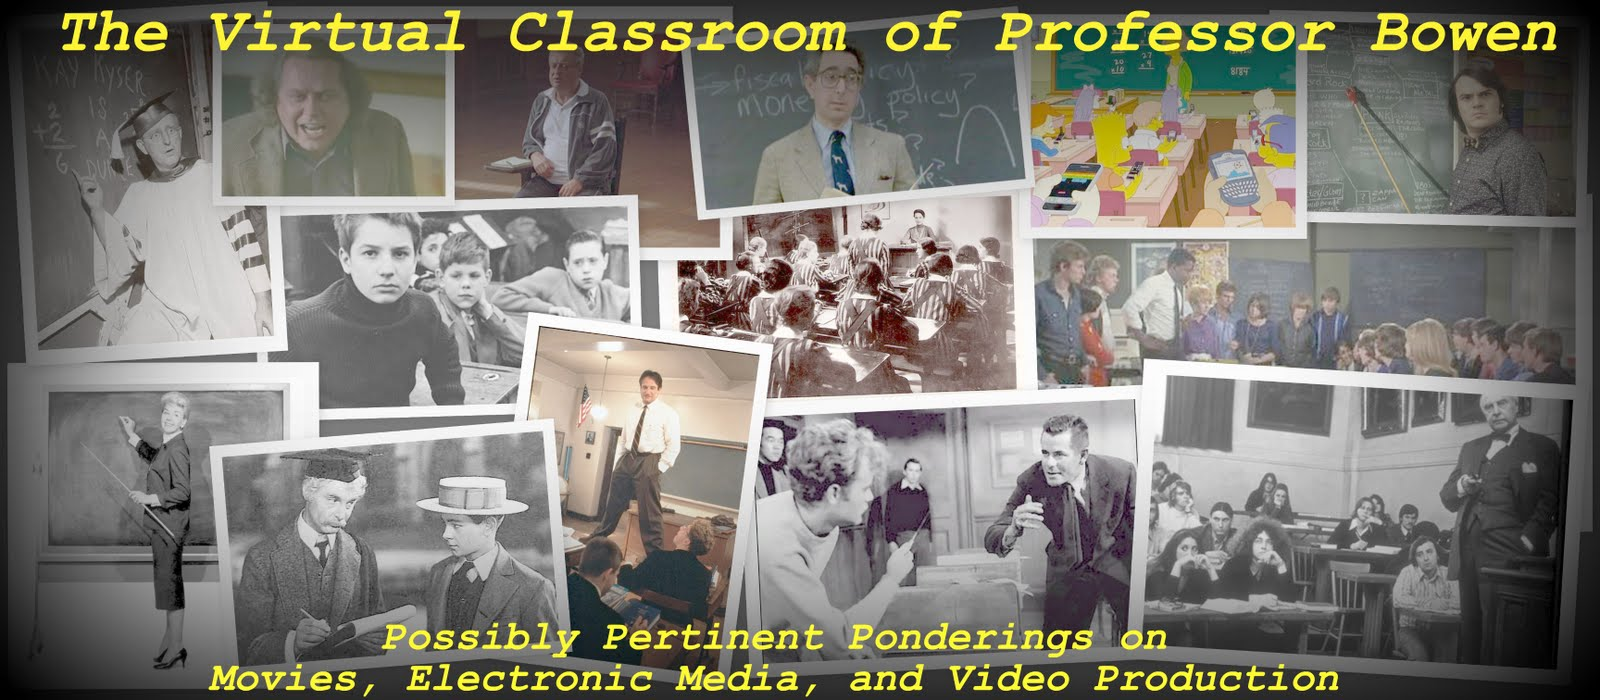 The Virtual Classroom of Professor Bowen